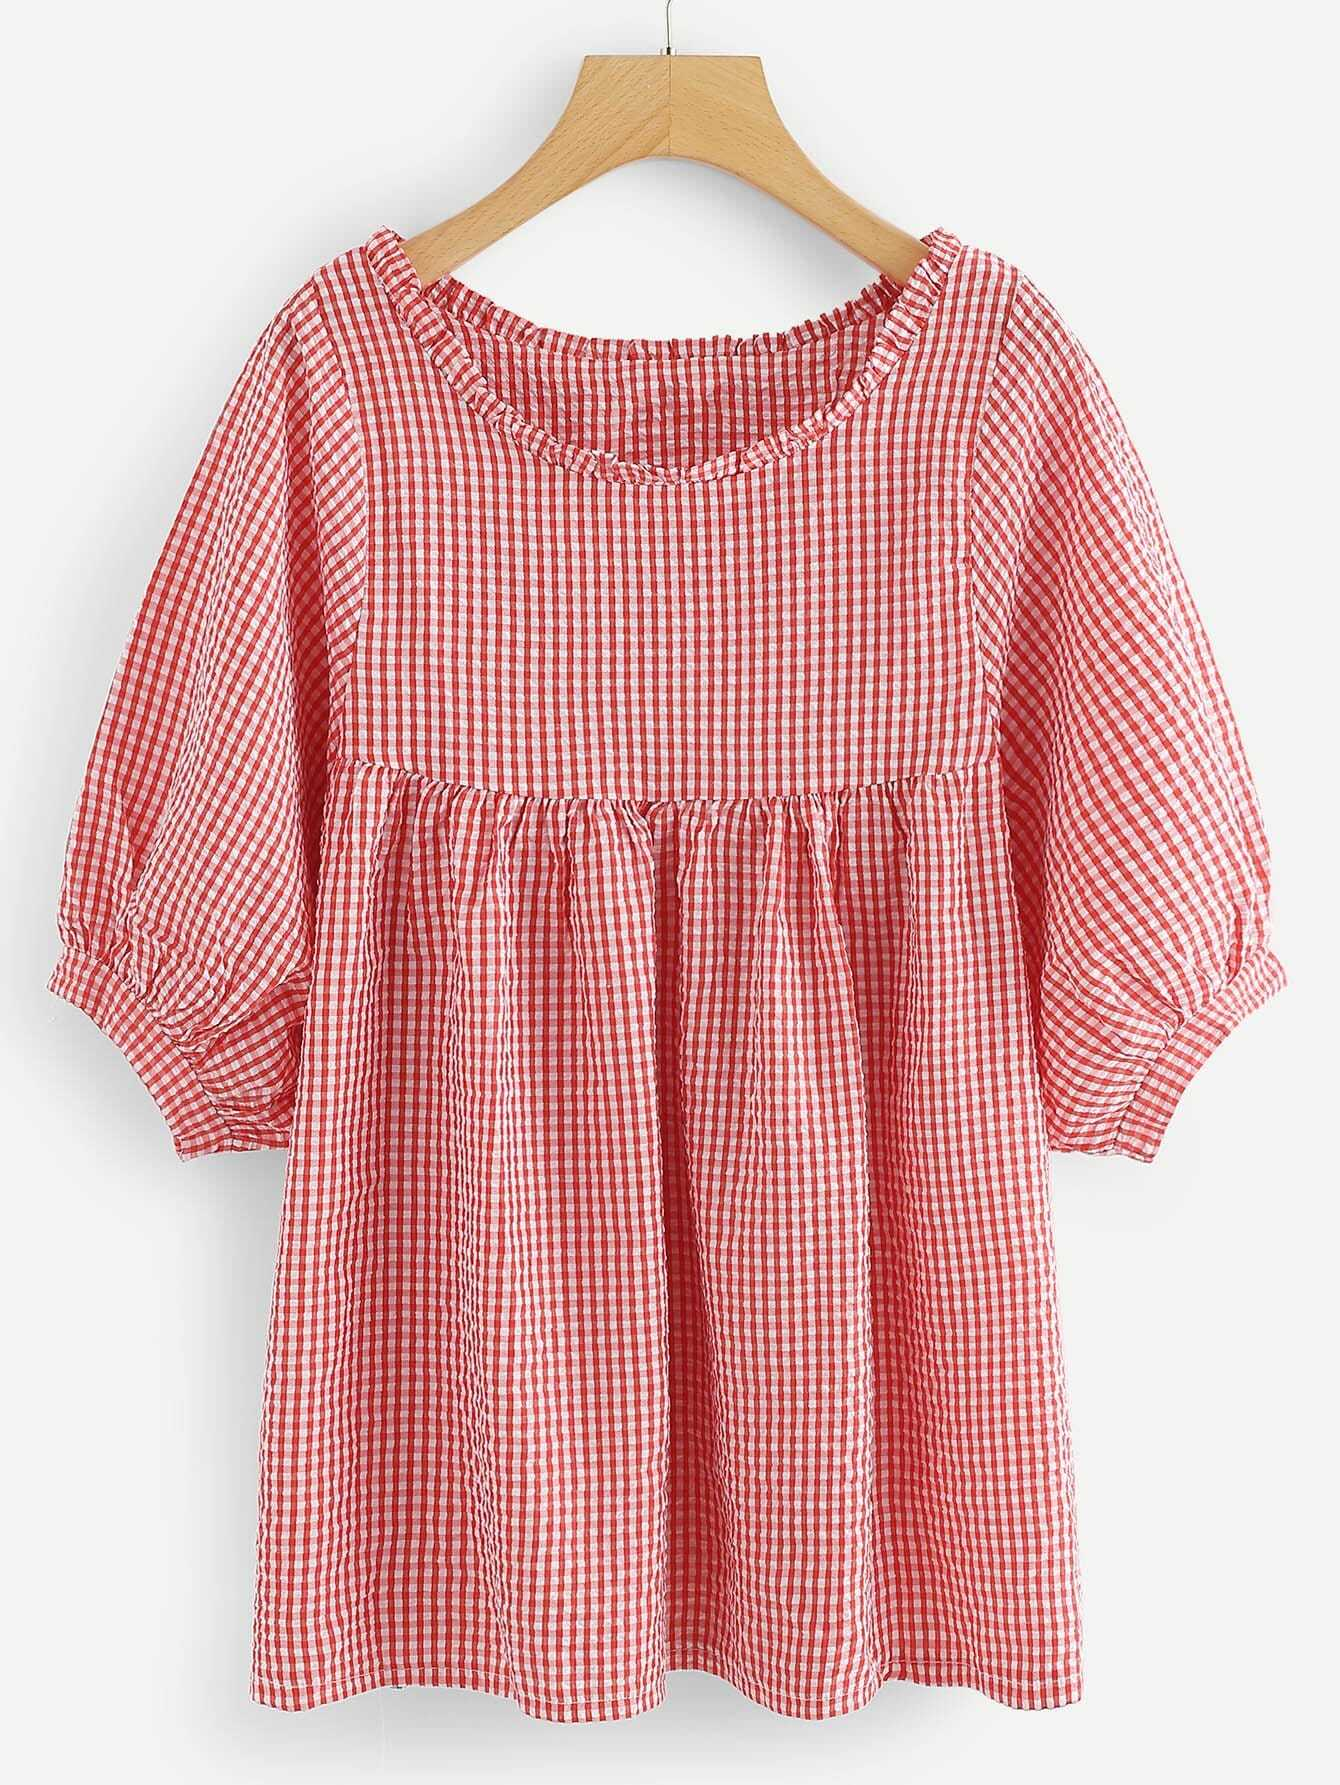 Ruffle Hem Plaid Blouse stylish slim dress hem blouse